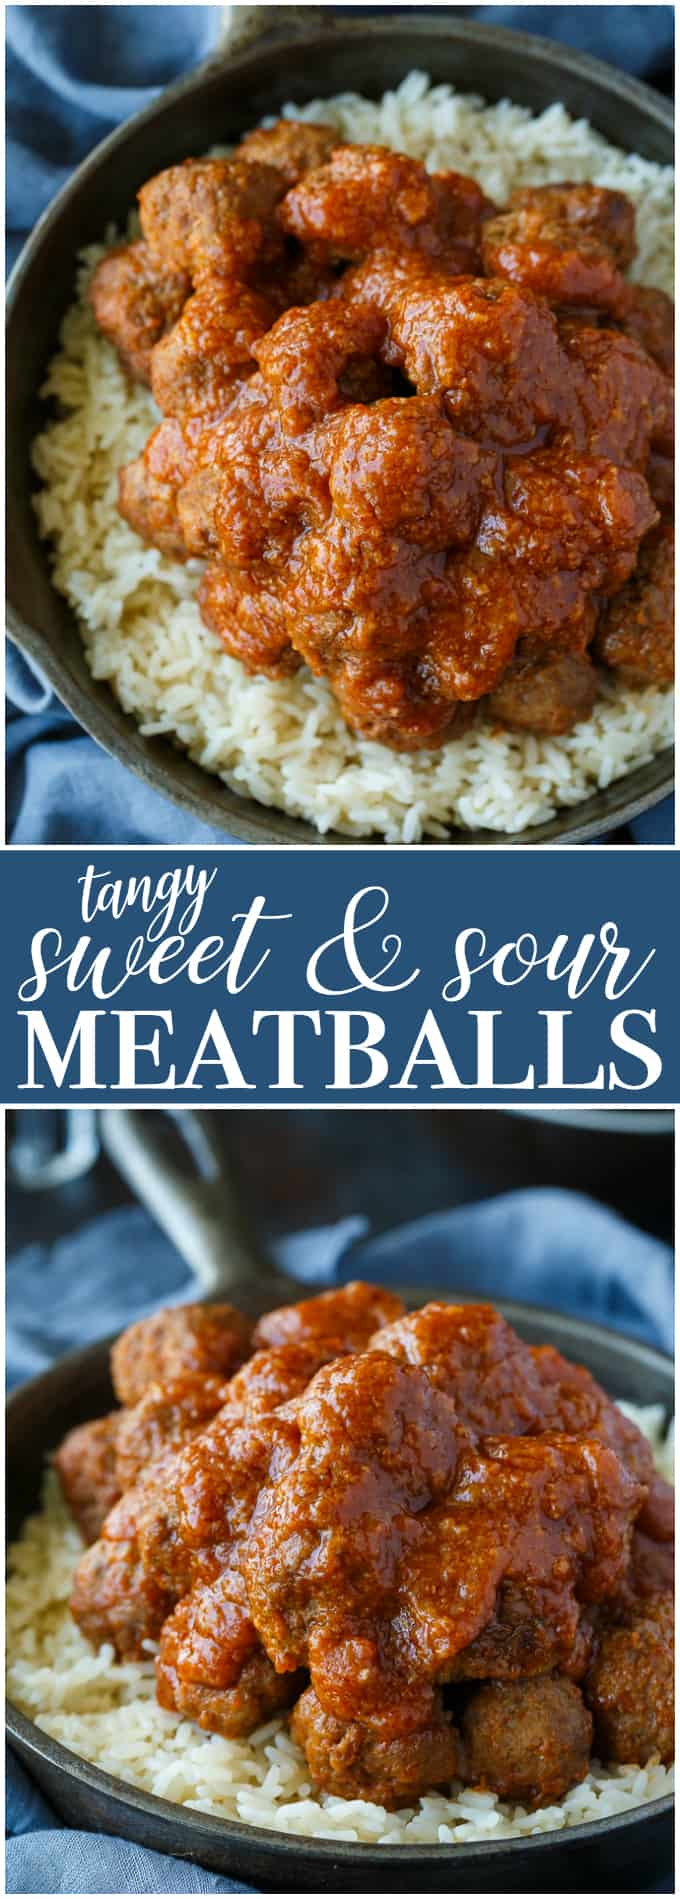 Tangy Sweet and Sour Meatballs - These delicious and freezer-friendly meatballs are simmered in a mouthwatering sauce for the easiest recipe ever! Serve over rice or on toothpicks for a tantalizing appetizer.